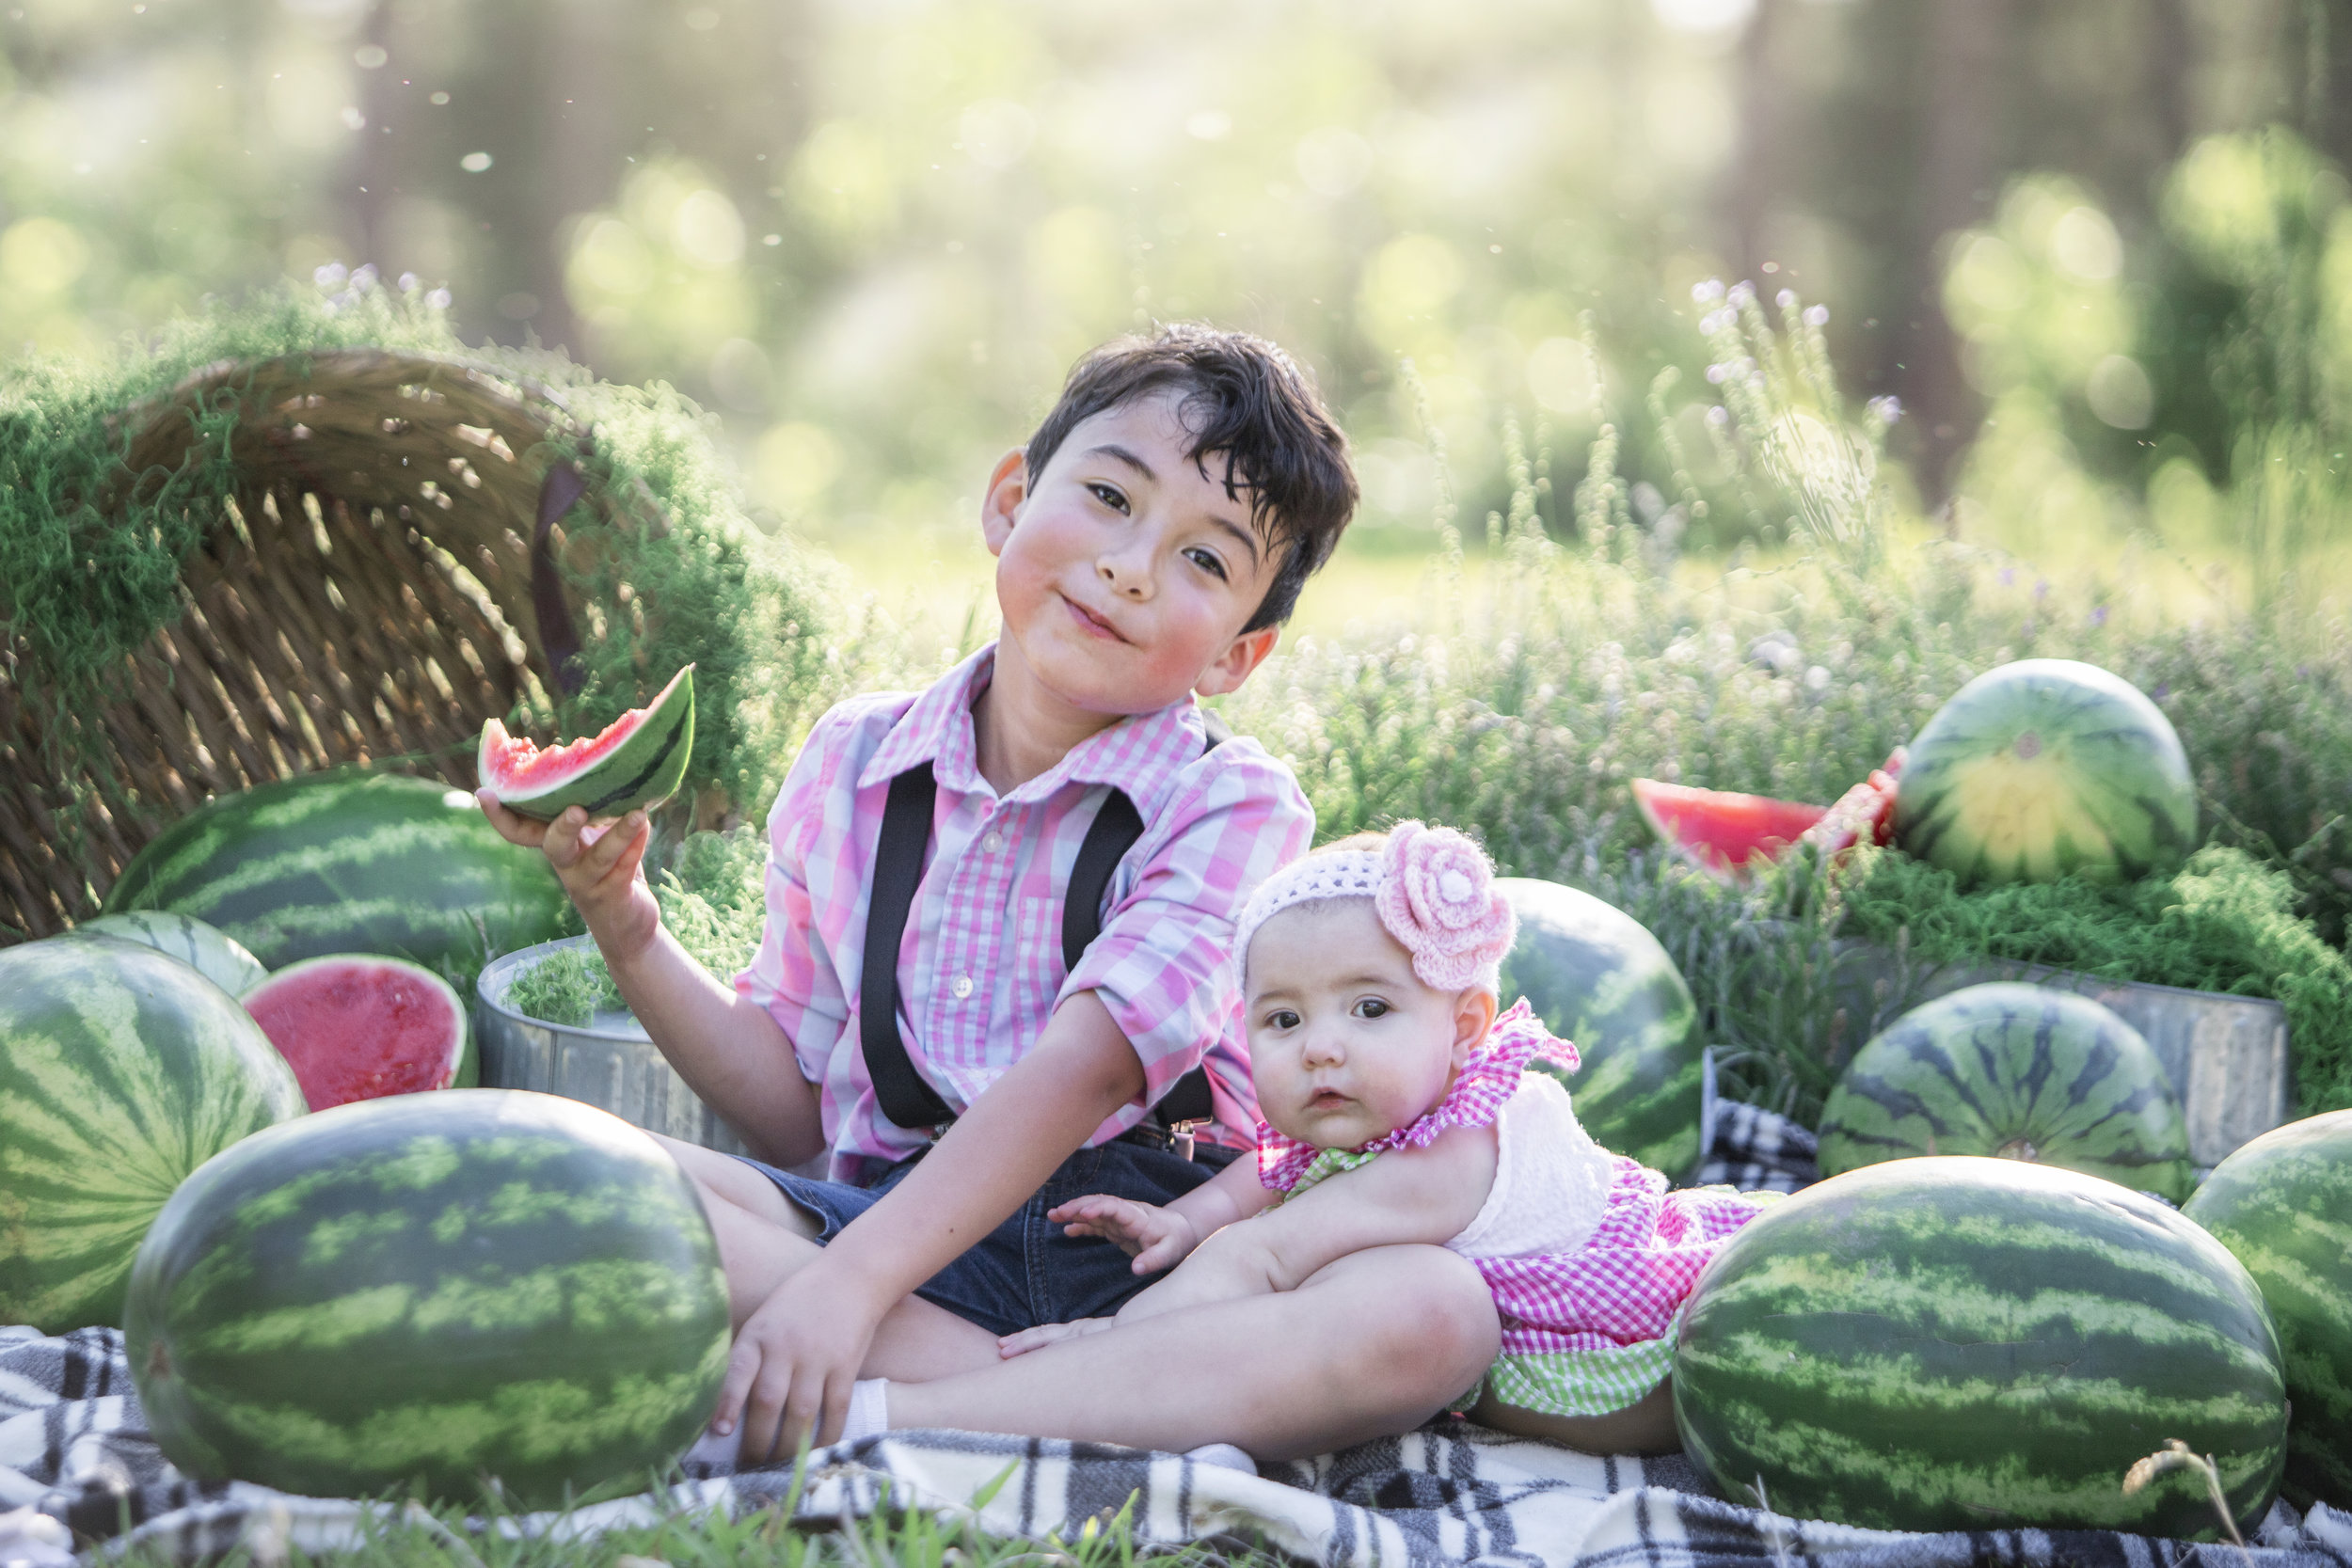 All The Watermelon!